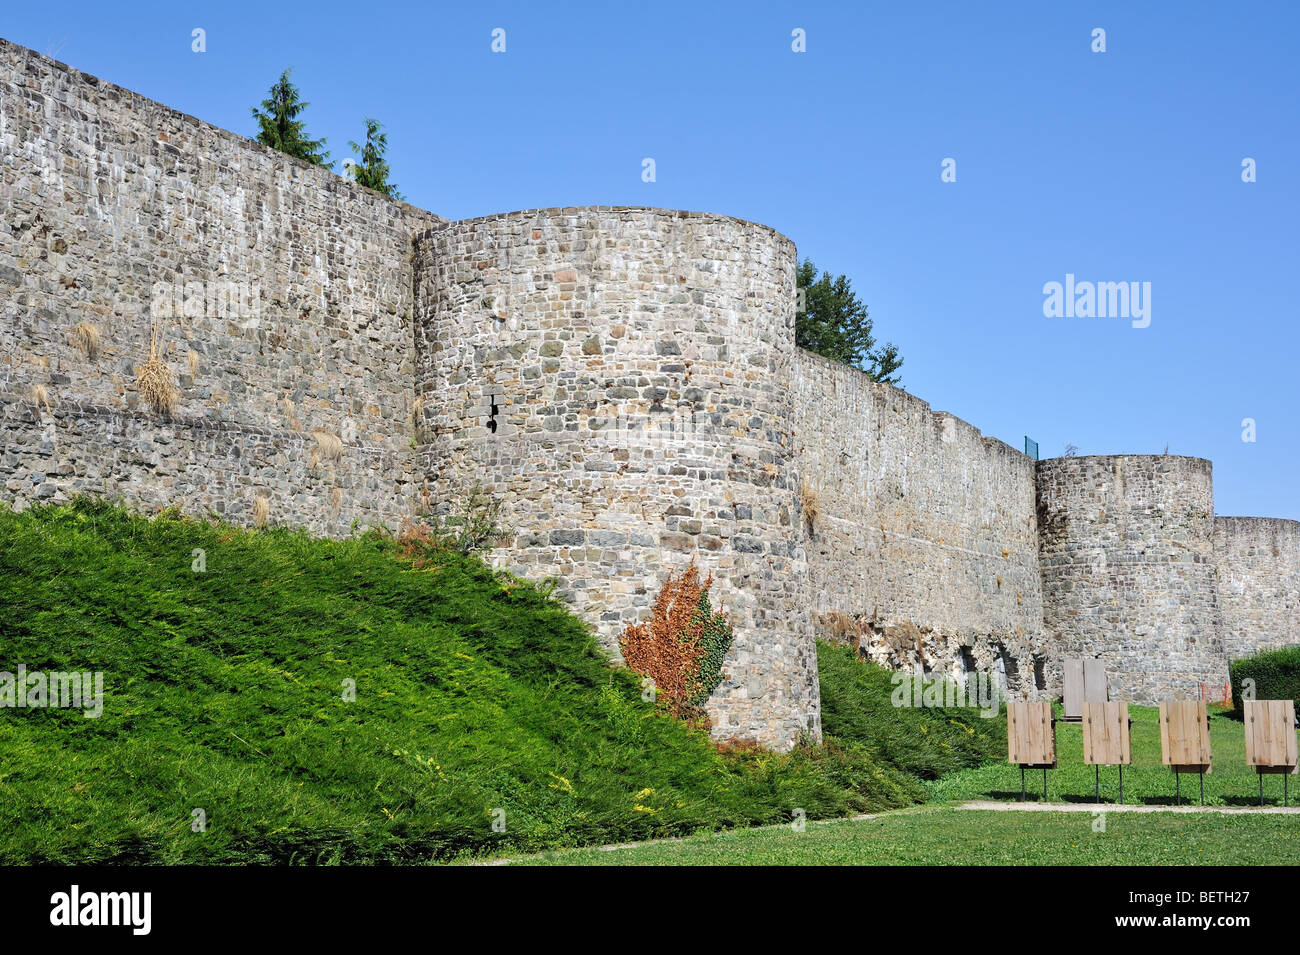 Old medieval town rampart / city wall at Binche, Hainaut, Wallonia, Belgium - Stock Image